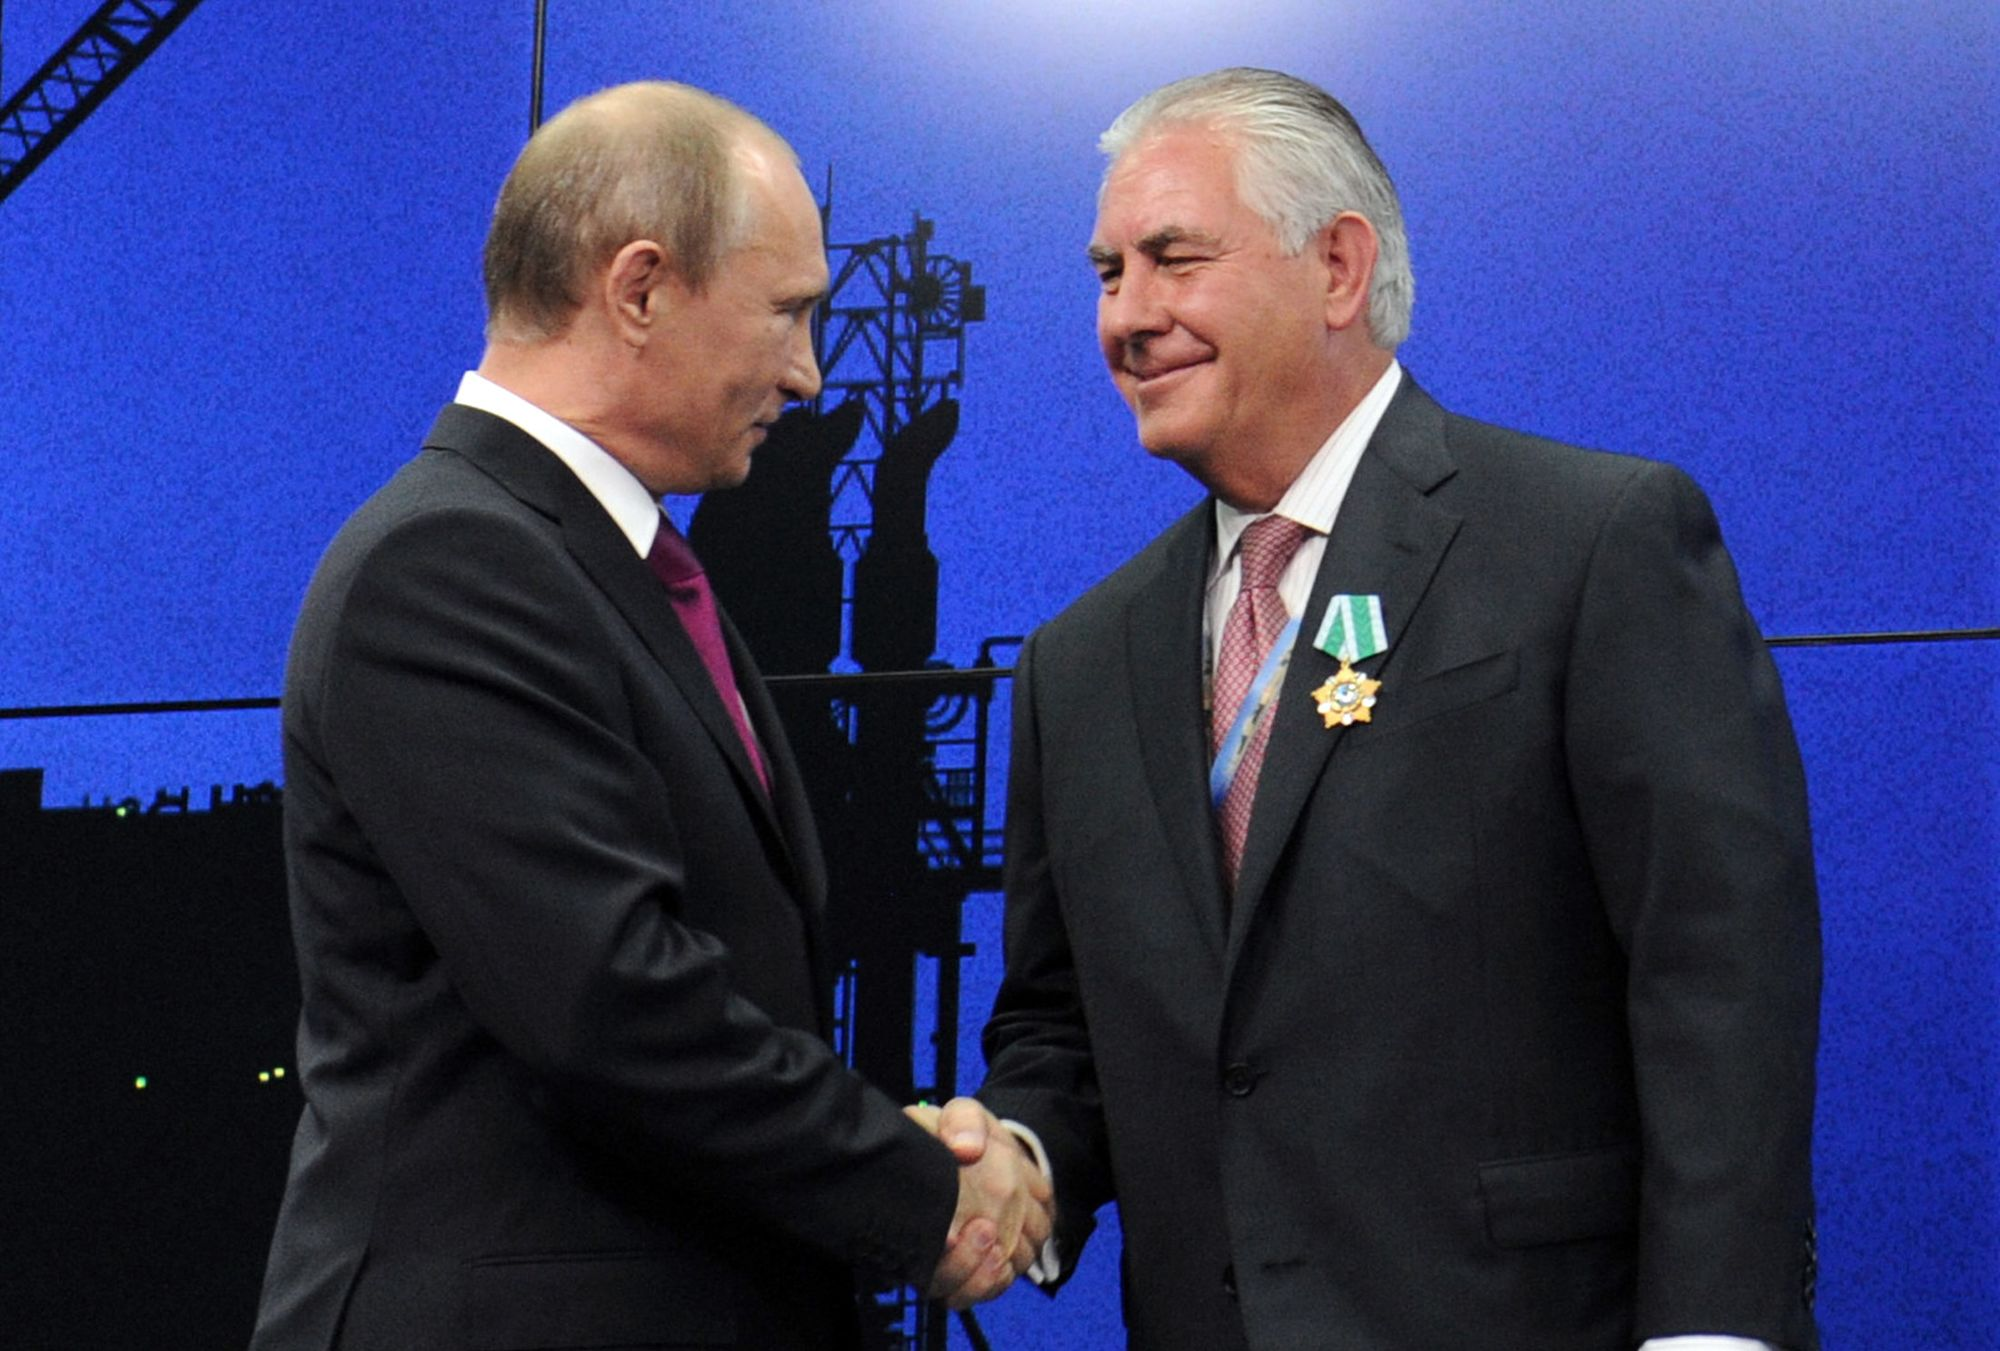 Putin Says Tillerson 'Fell in With Bad Company' thumbnail